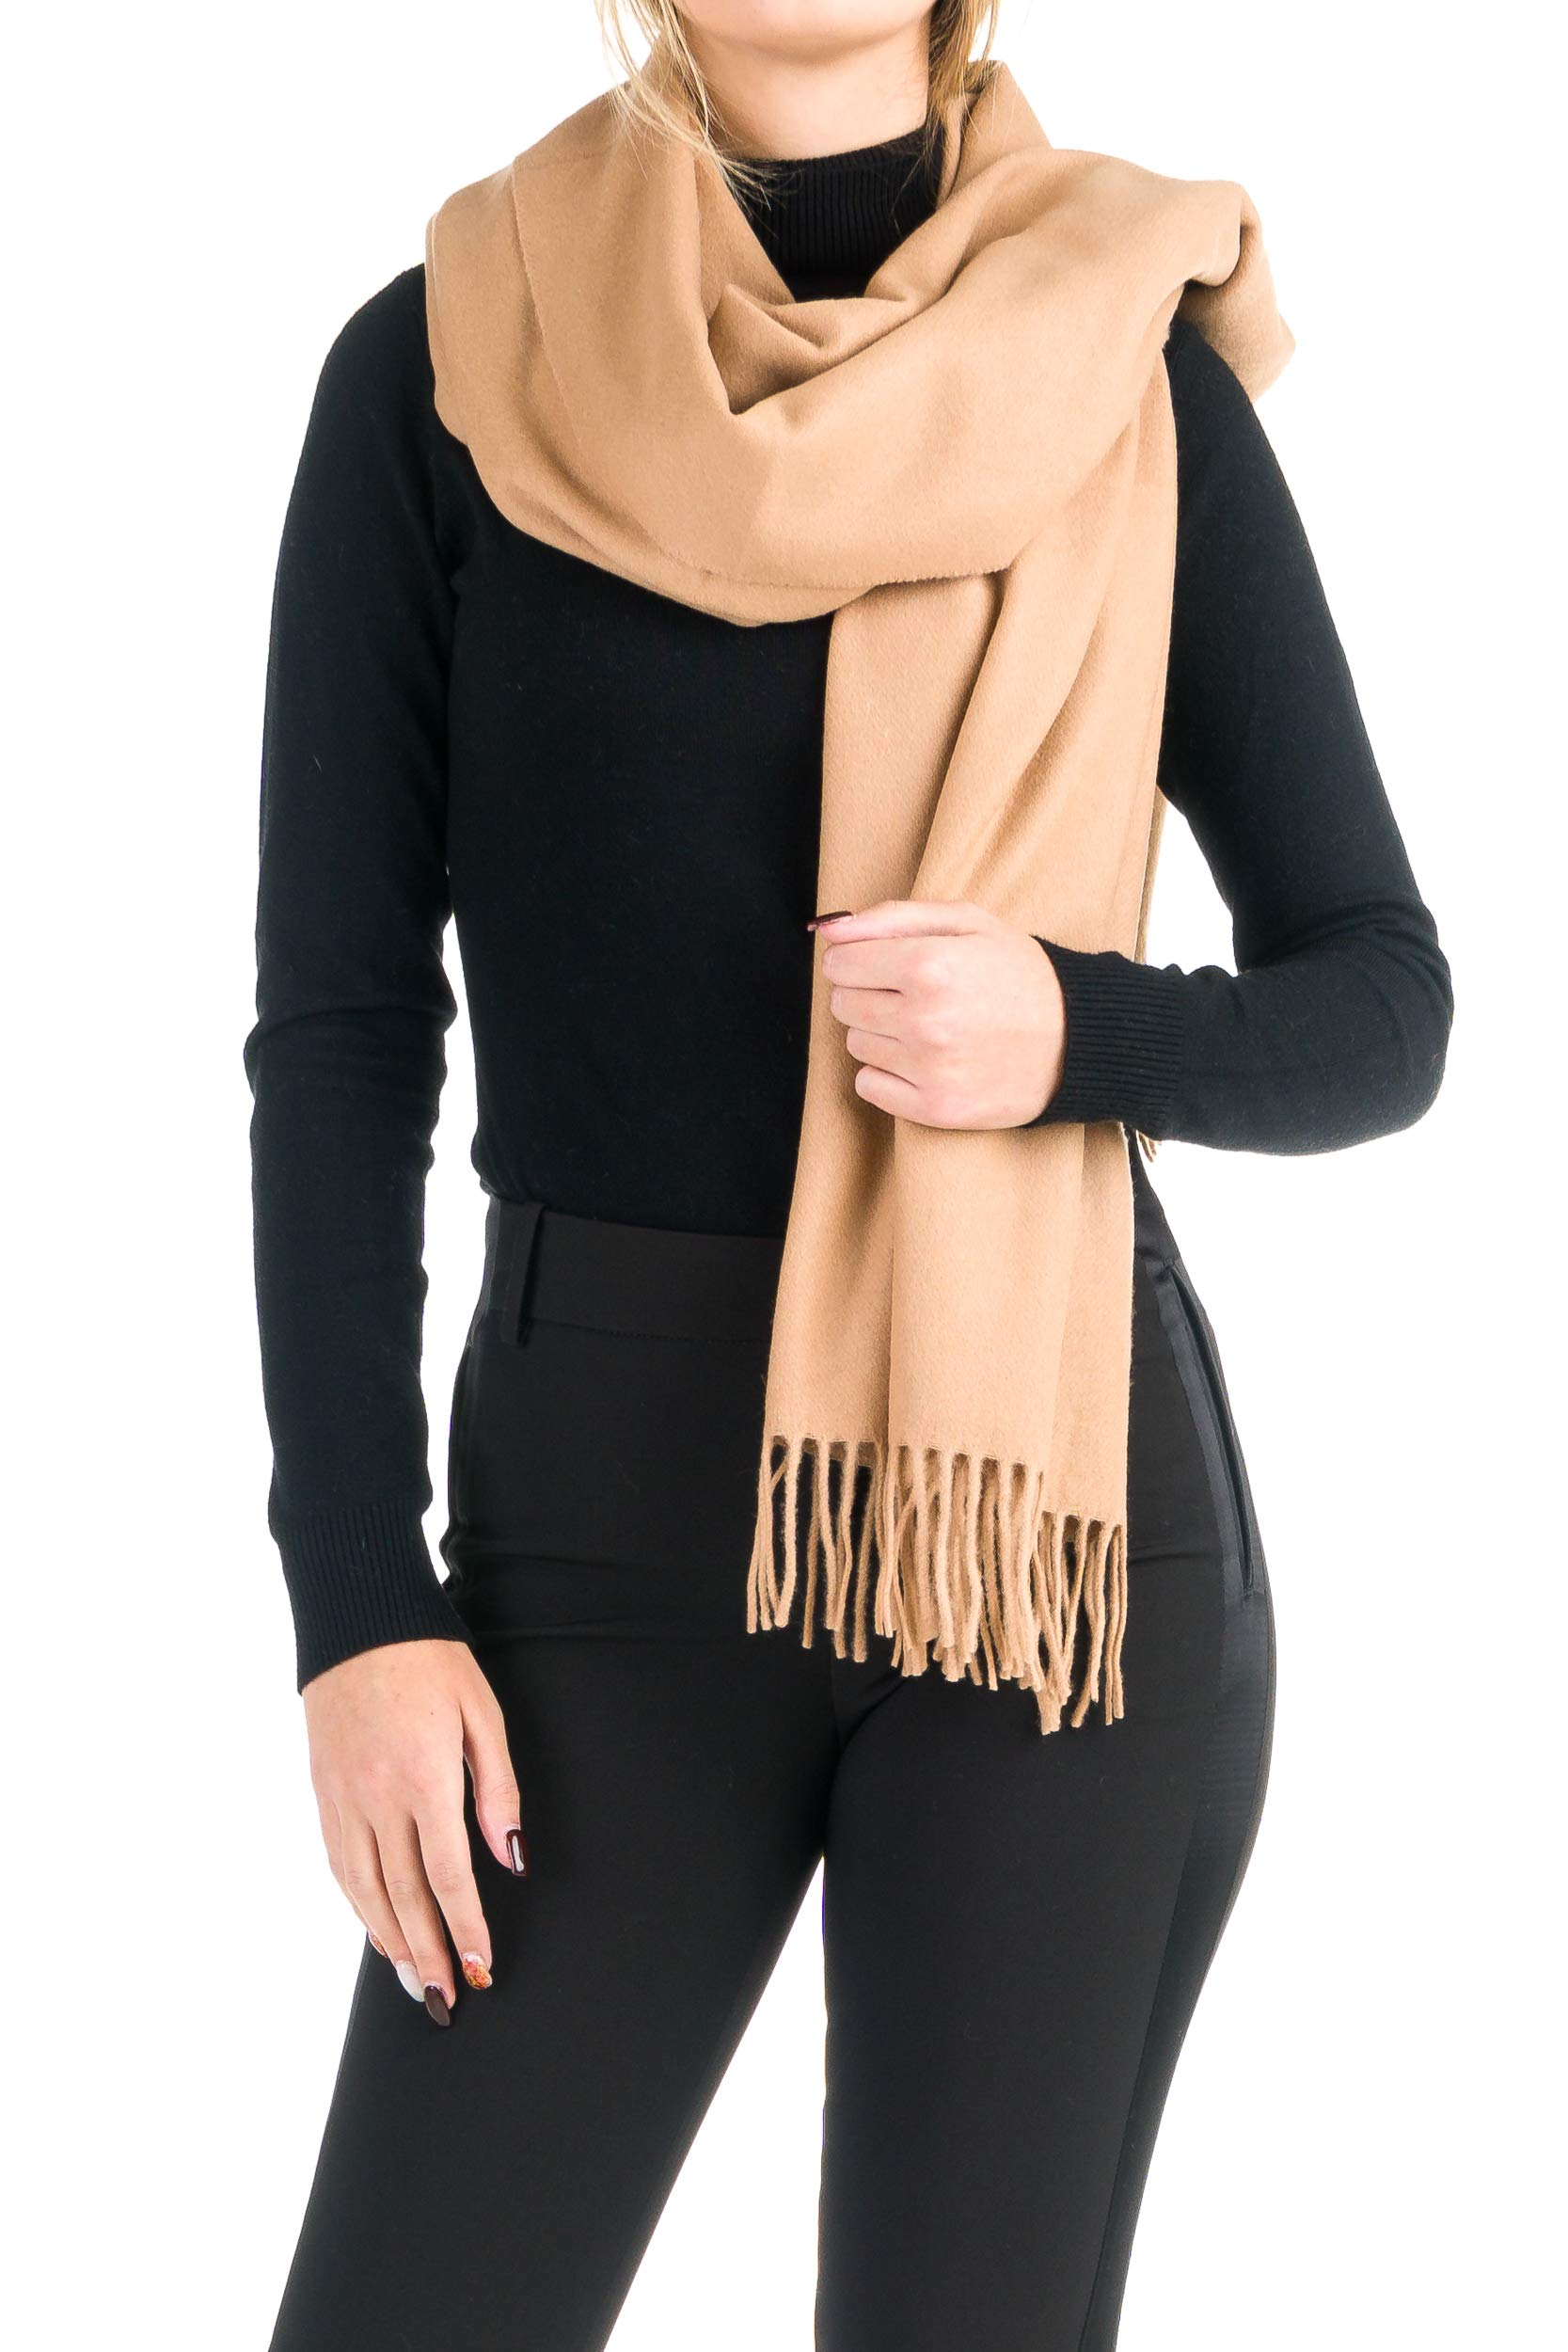 Angiola Made In Italy – Women's Winter Solid Tone 100% Virgin Wool Stole 100% Made In Italy – Warmly Embracing (Camel)